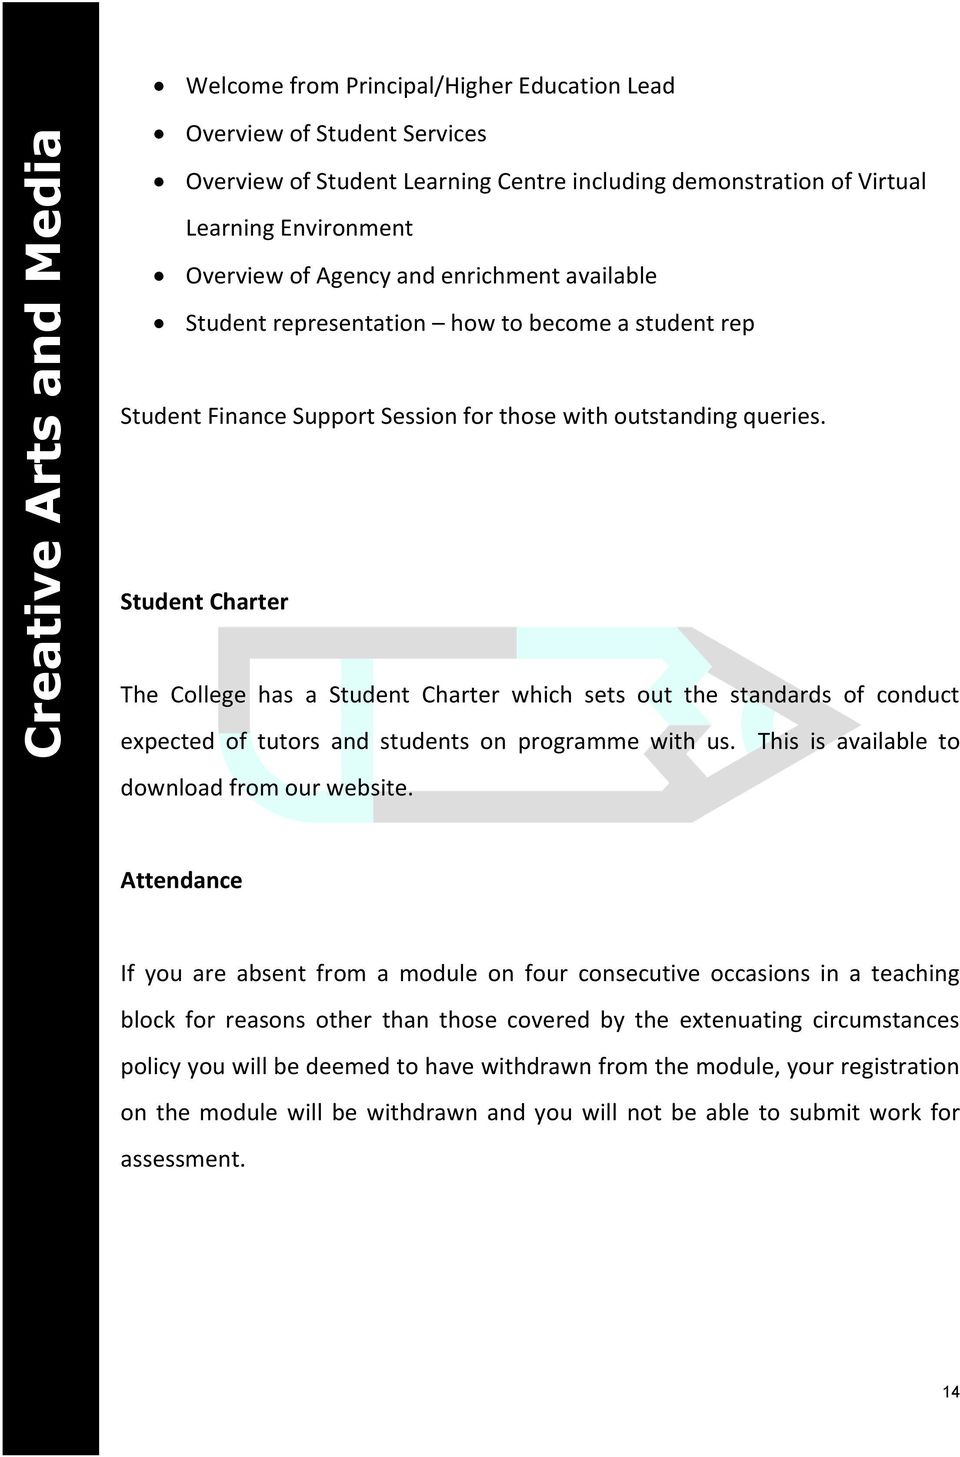 Student Charter The College has a Student Charter which sets out the standards of conduct expected of tutors and students on programme with us. This is available to download from our website.